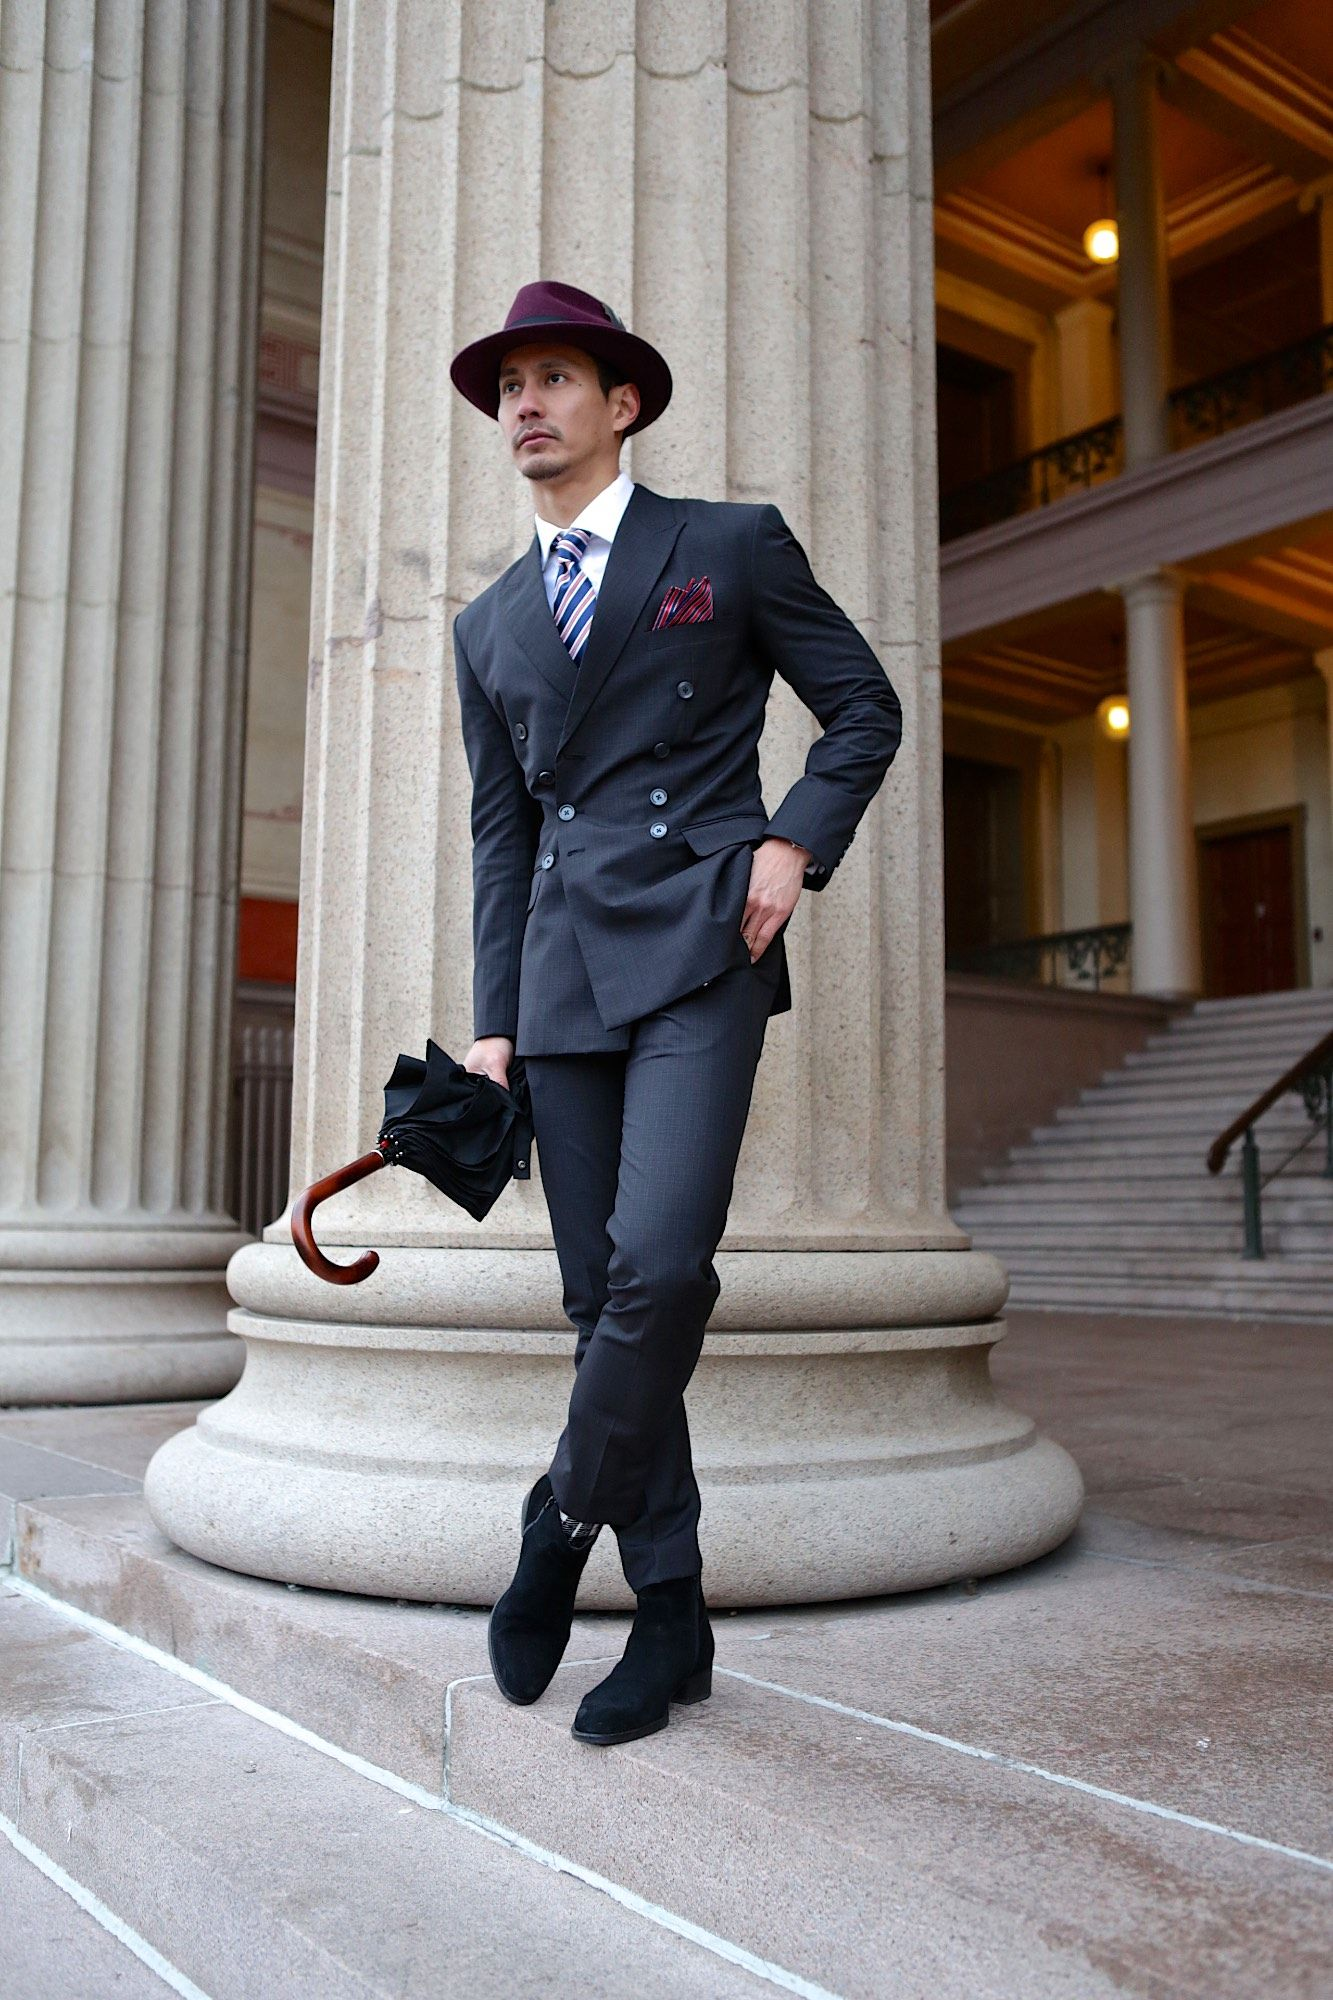 be209882bd Double breasted dark gray suit + striped tie + burgundy fedora + suede Chelsea  boots